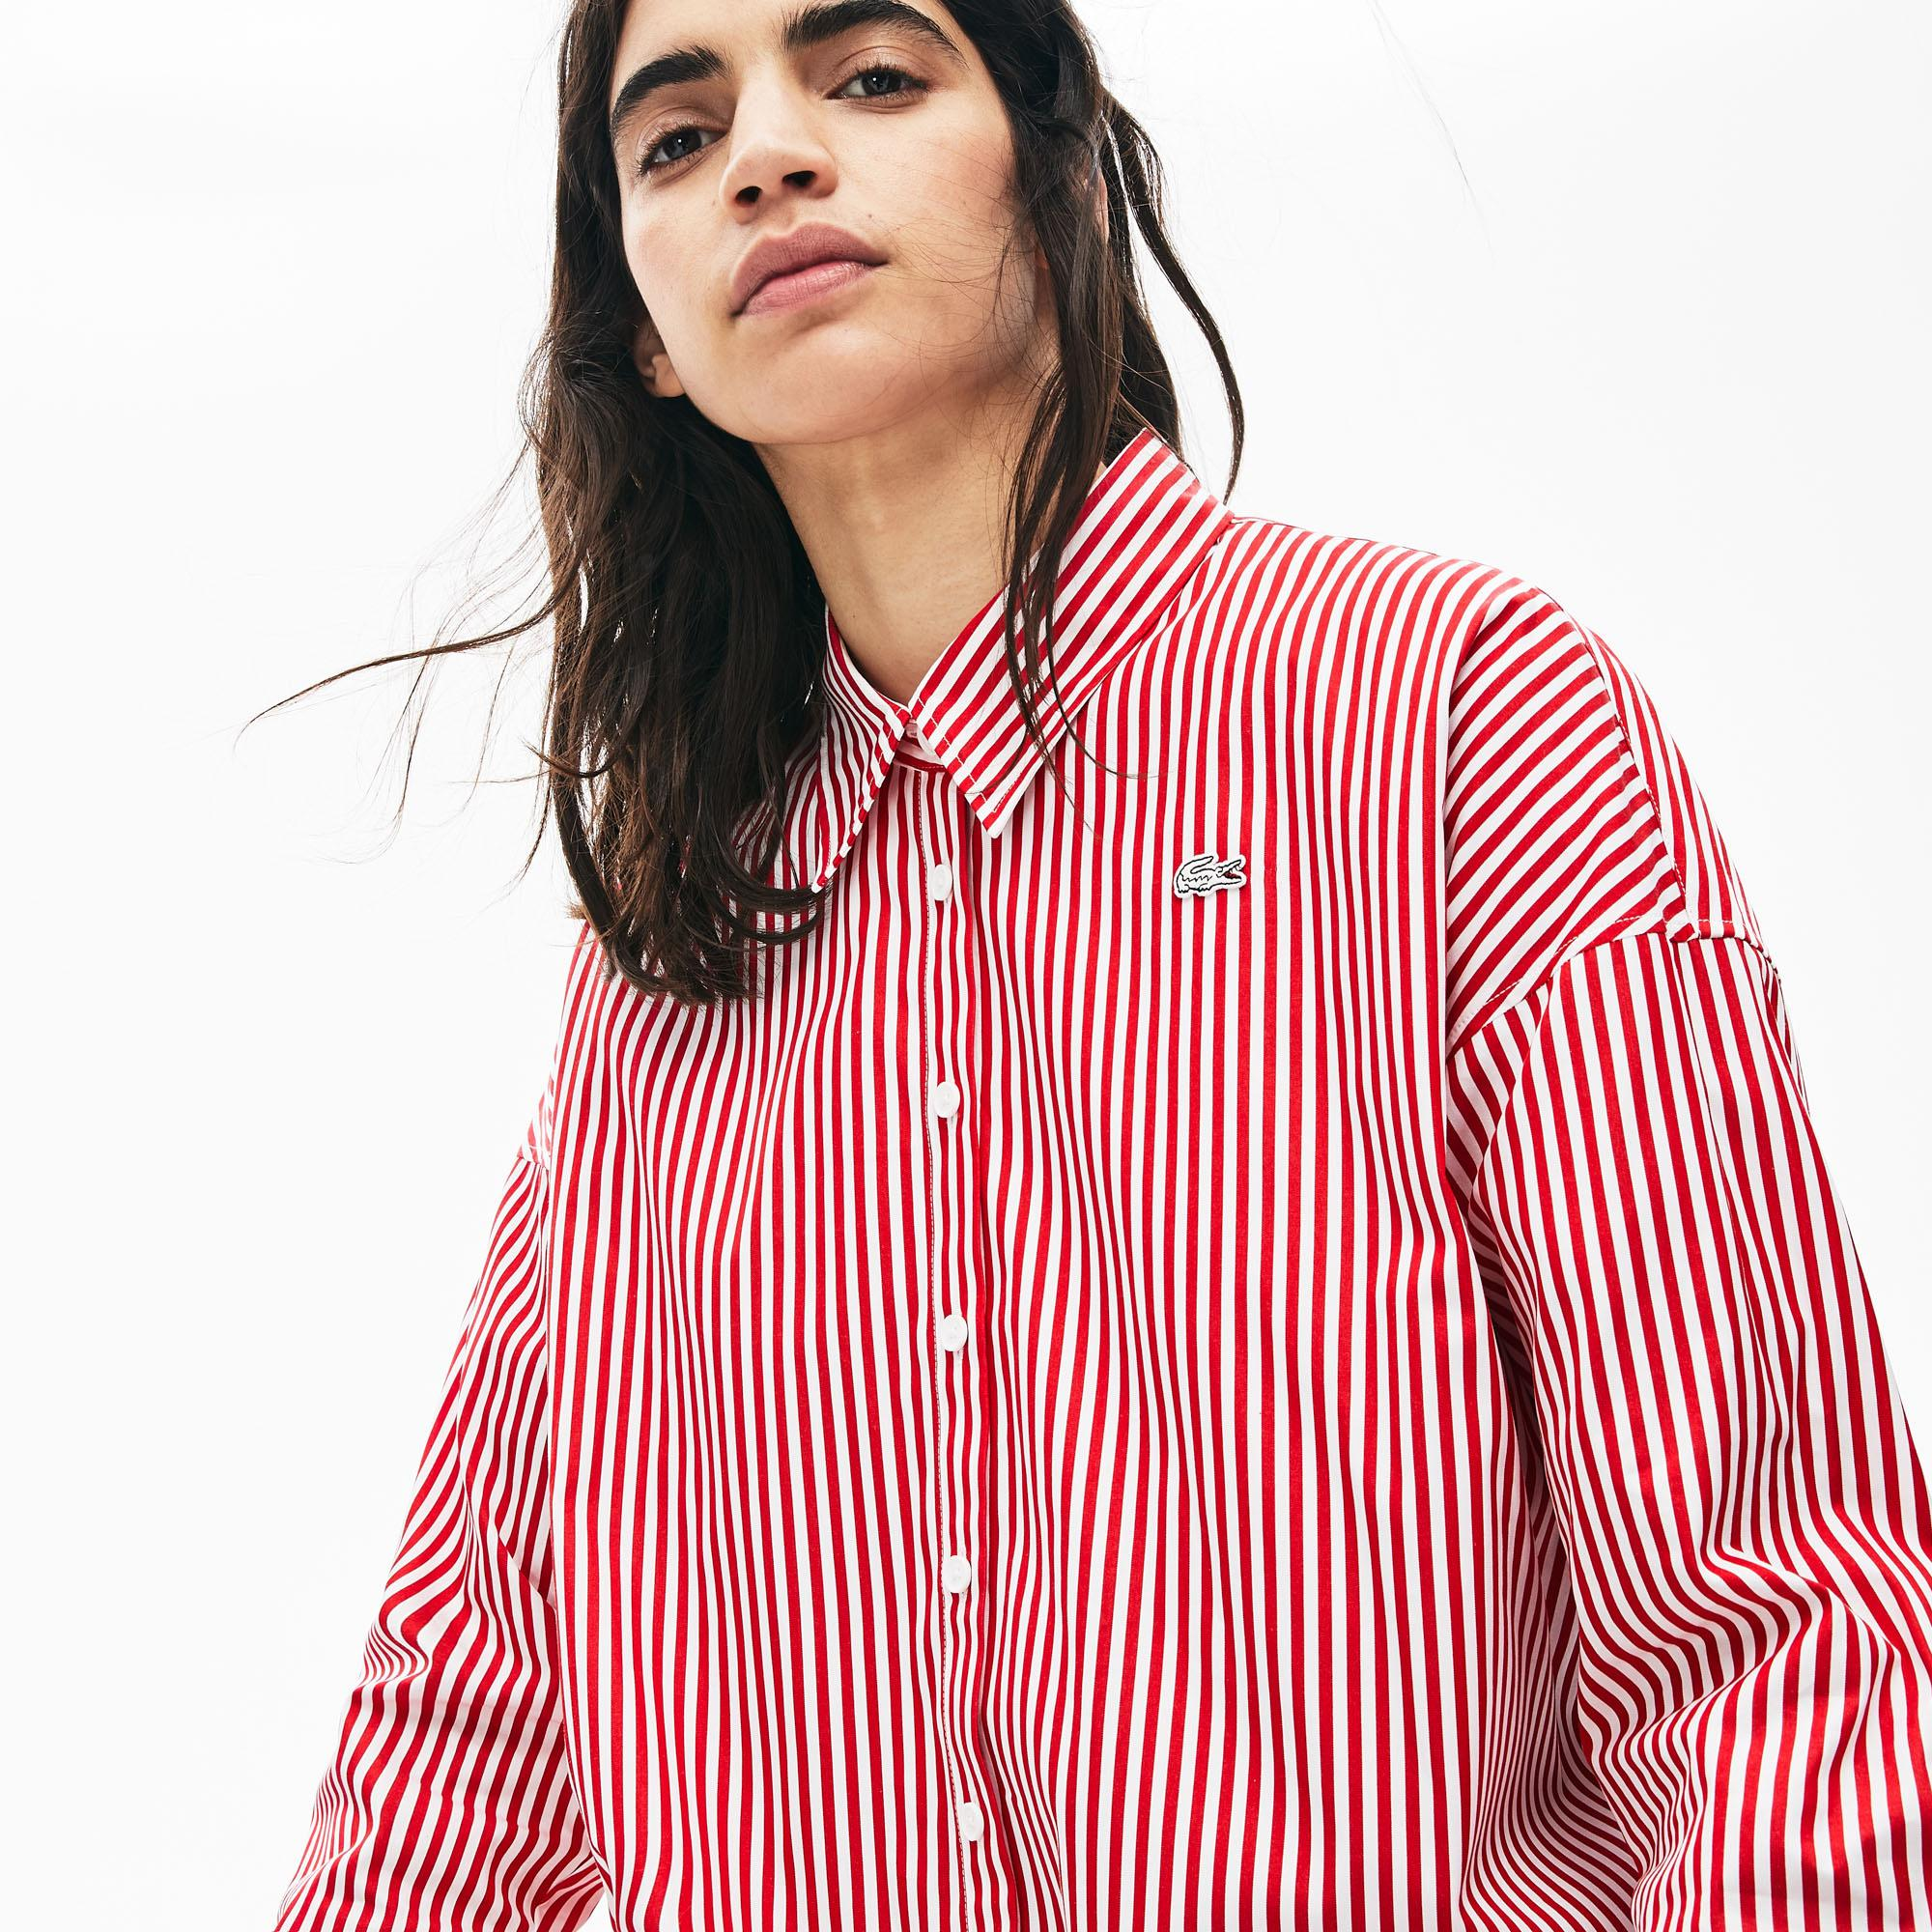 Lacoste L!VE Women's Boxy Fit Striped Cotton Shirt